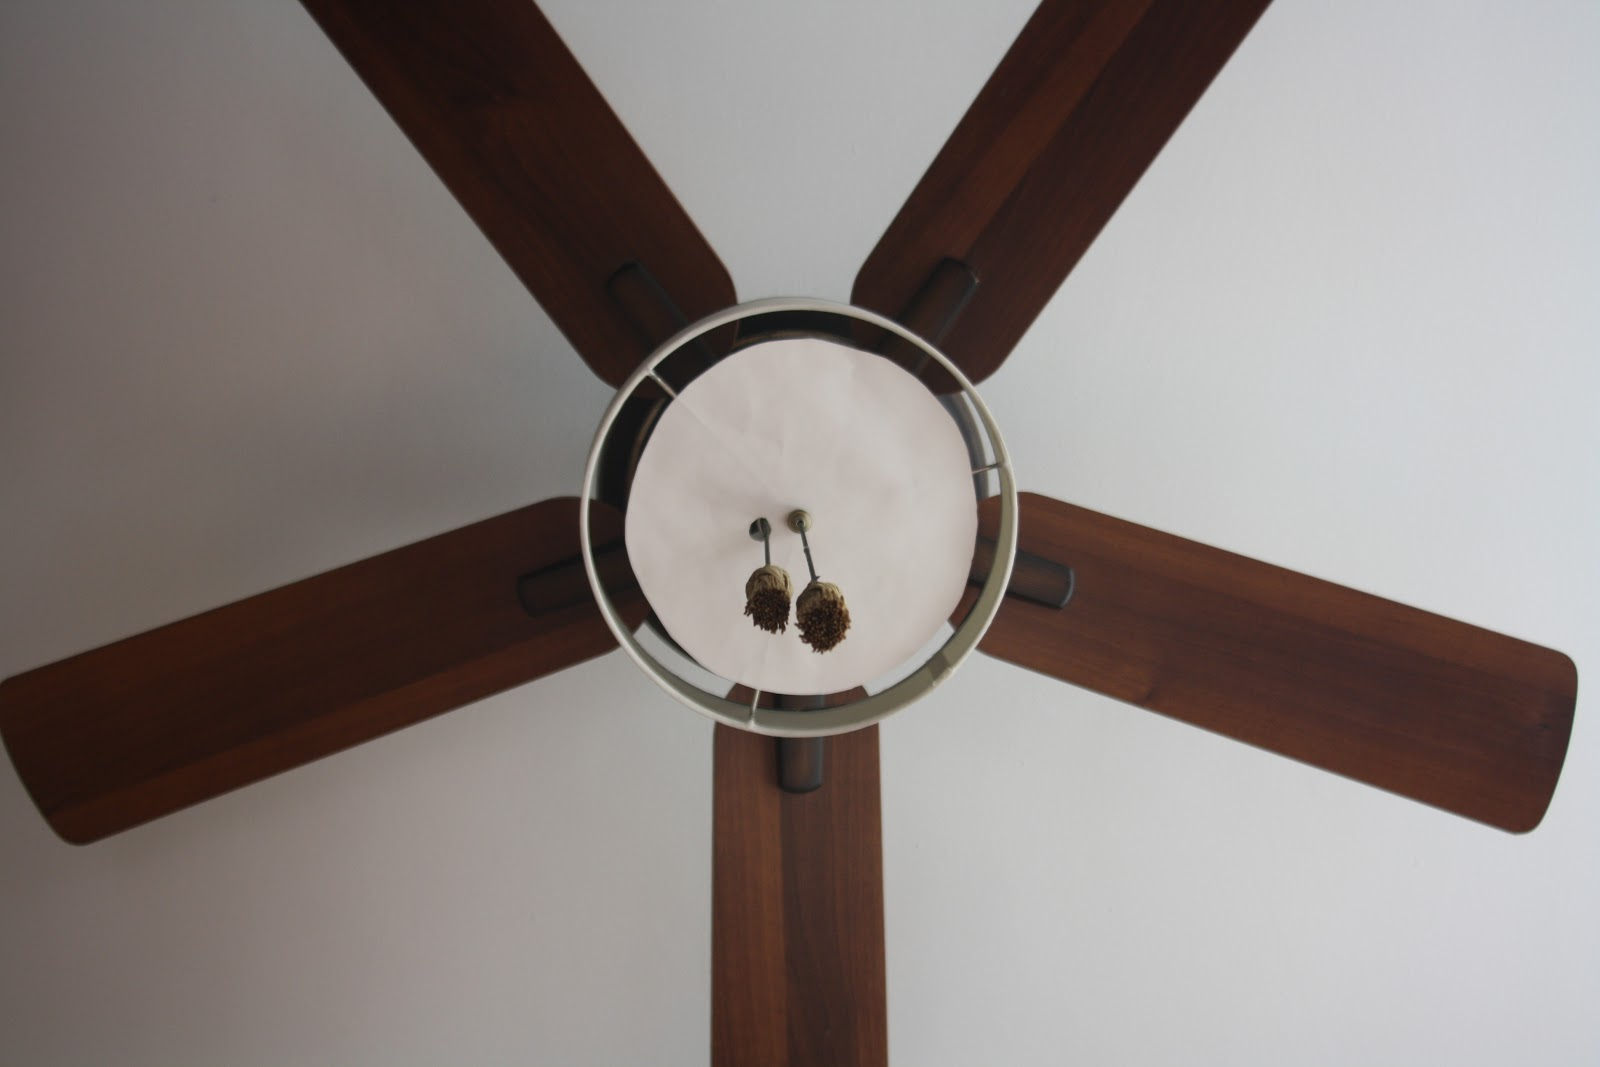 view of the temporary DIY diffuser on the drum shade from below the ceiling fan